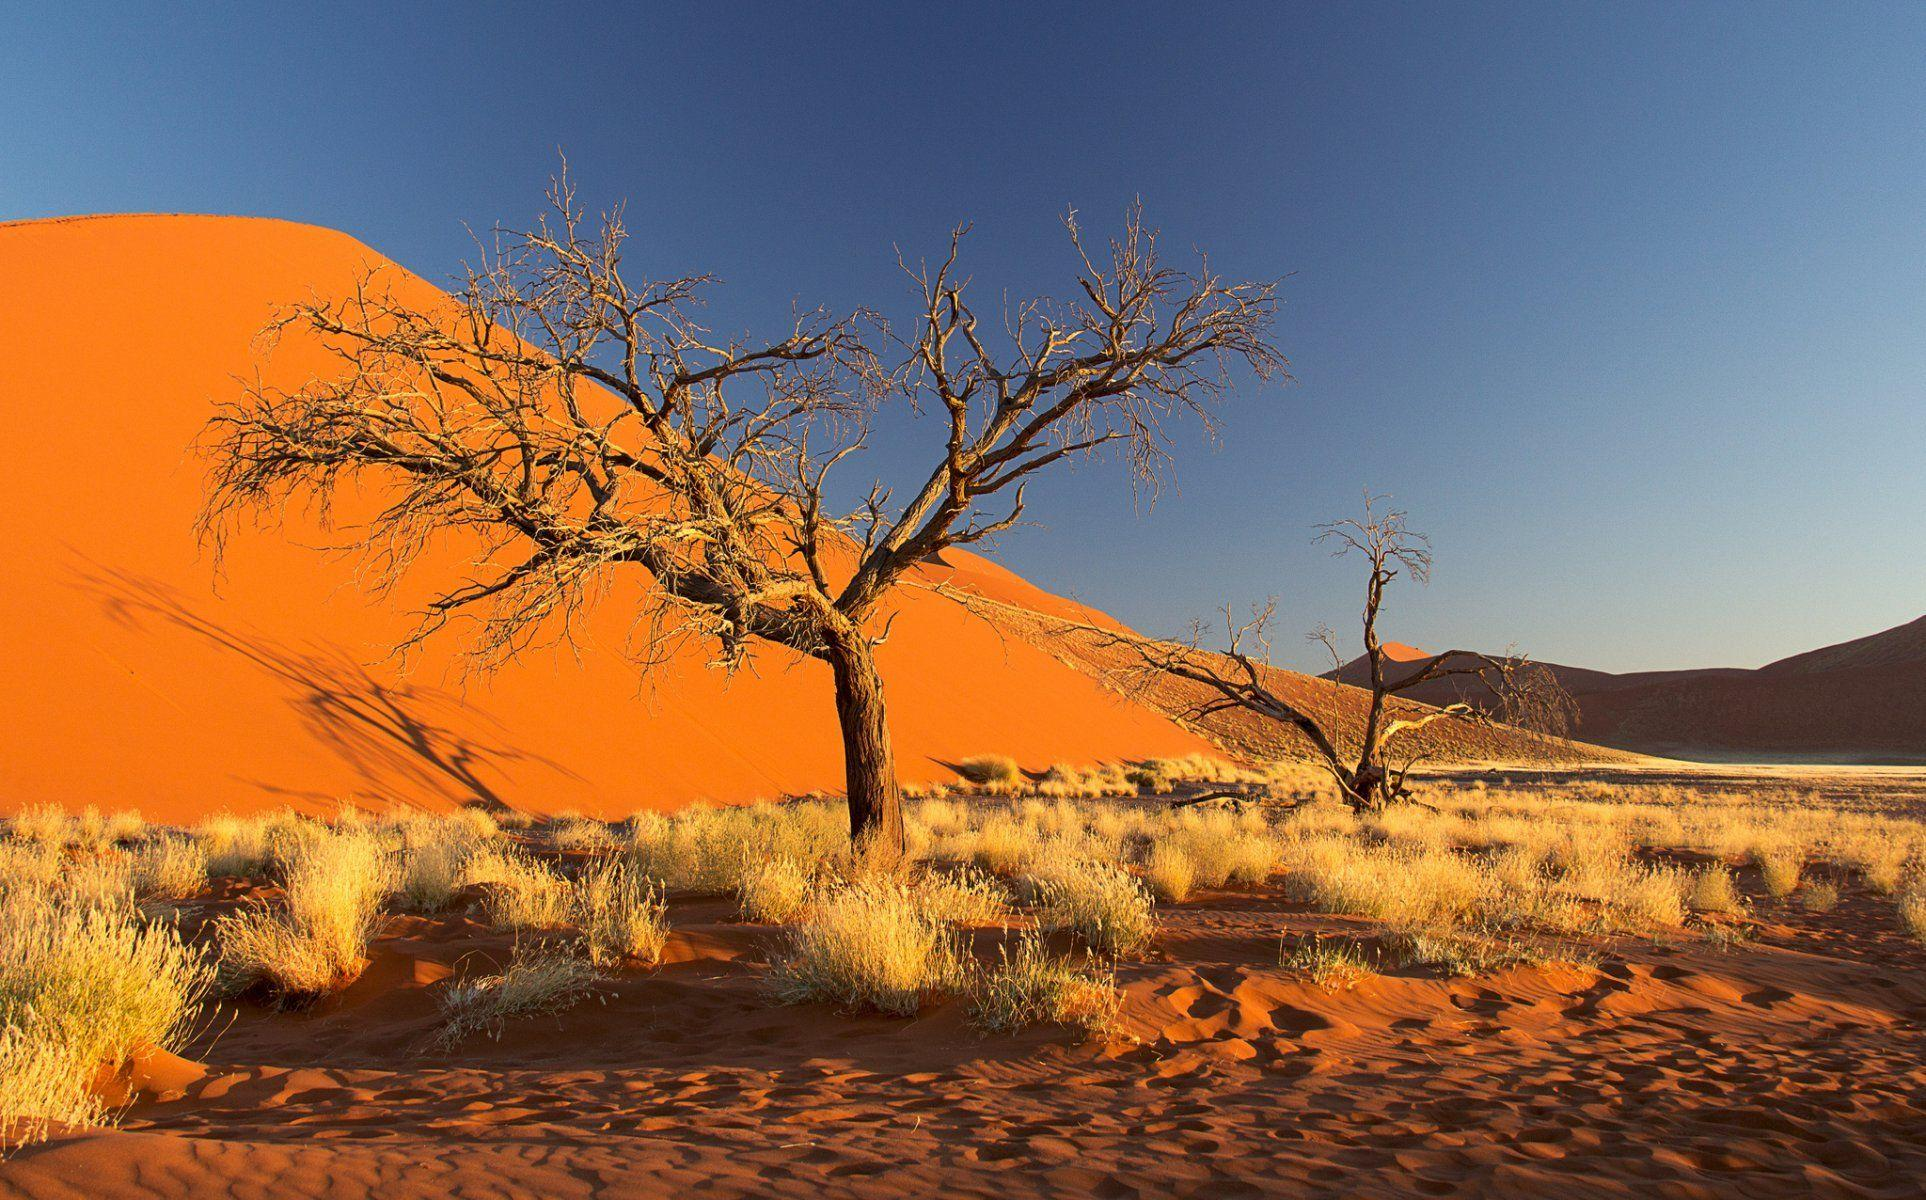 namibia africa namib desert sky dune sand tree bush HD wallpaper